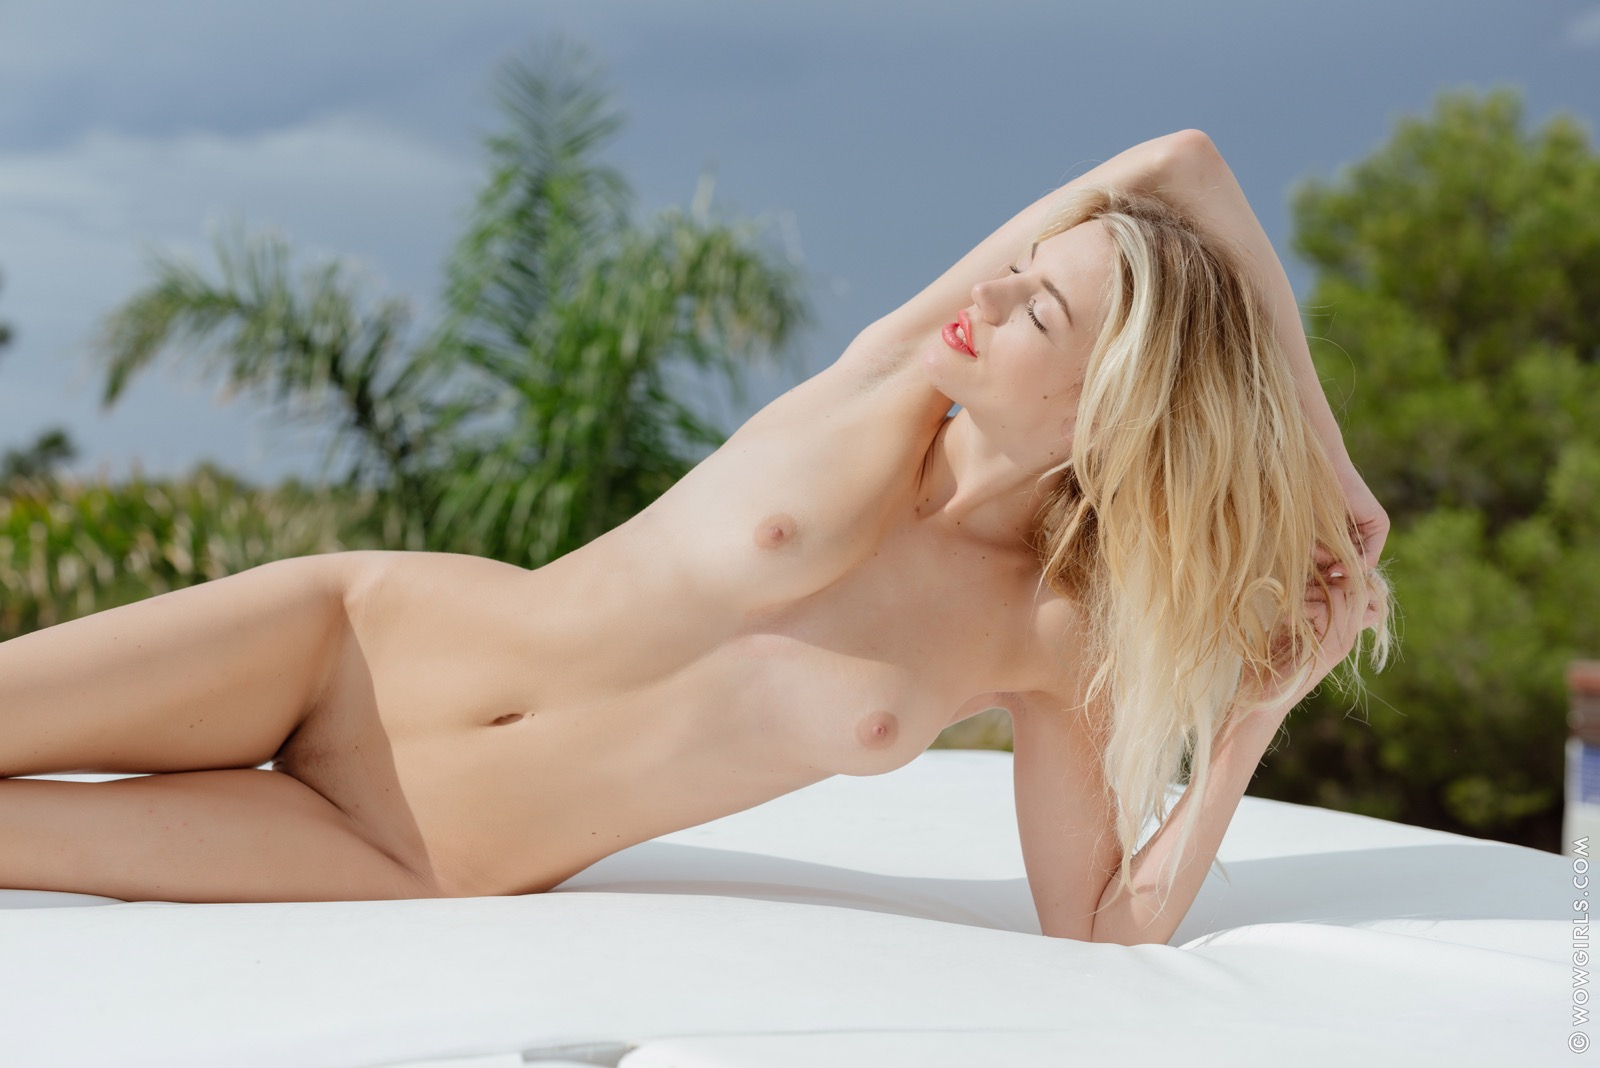 Naked Wow Girls